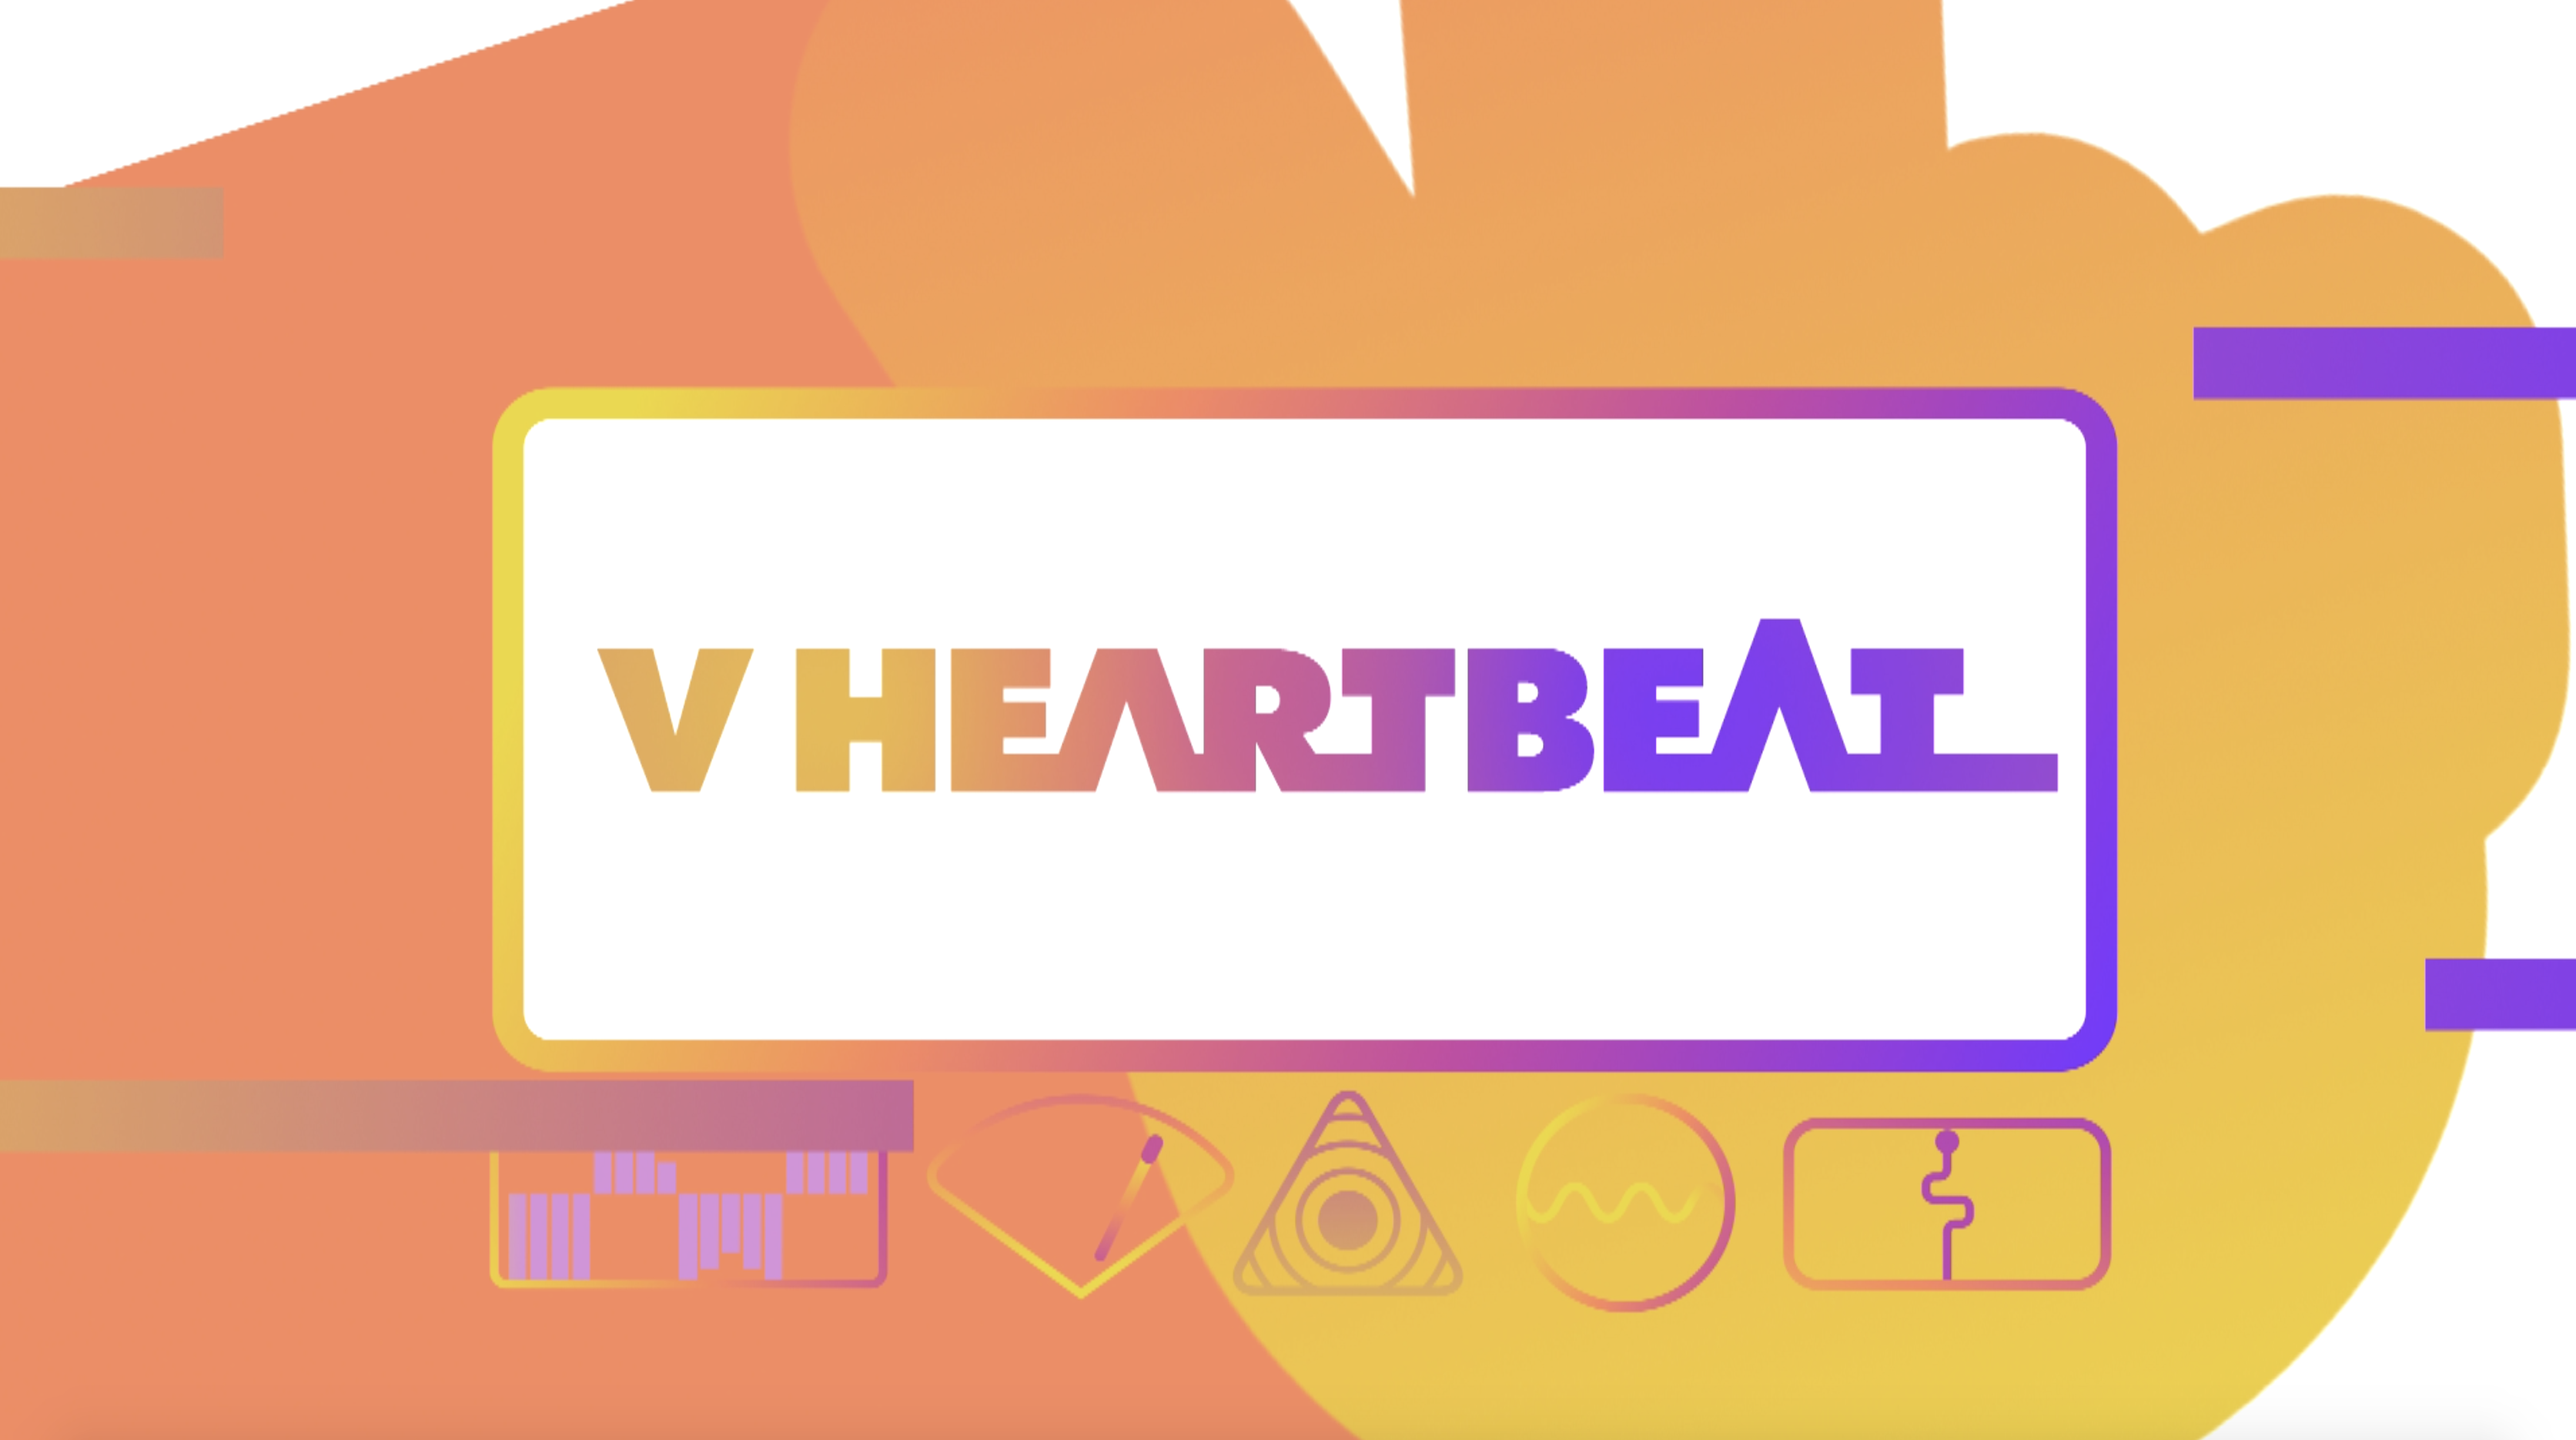 [2019 VLIVE AWARDS - V HEARTBEAT] TEASER